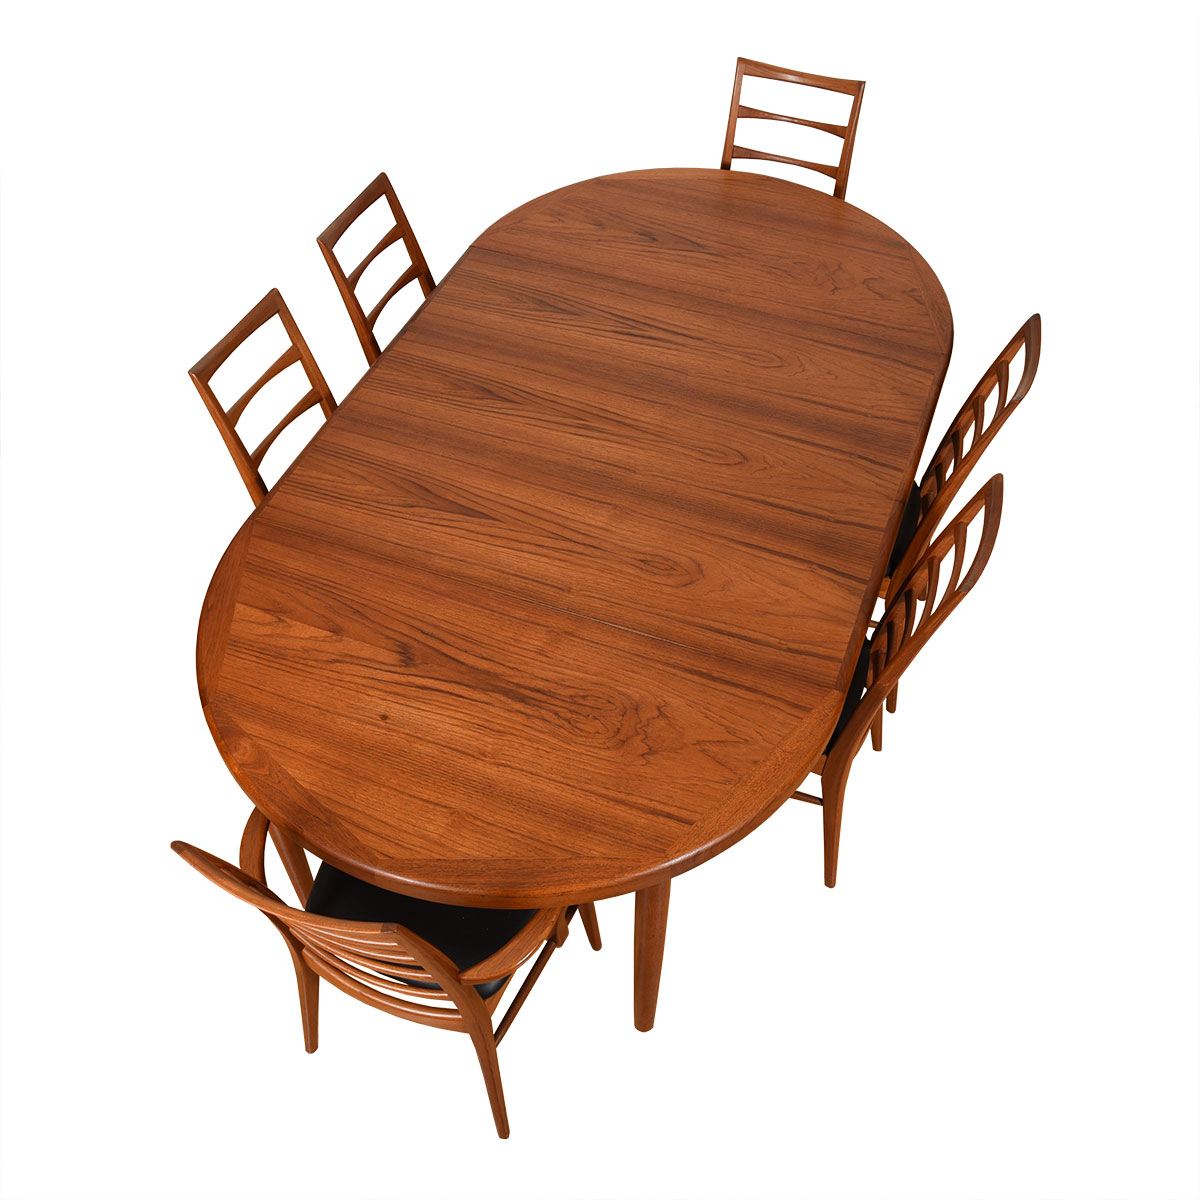 Danish Modern Teak Expanding Round-to-Oval Dining Table.